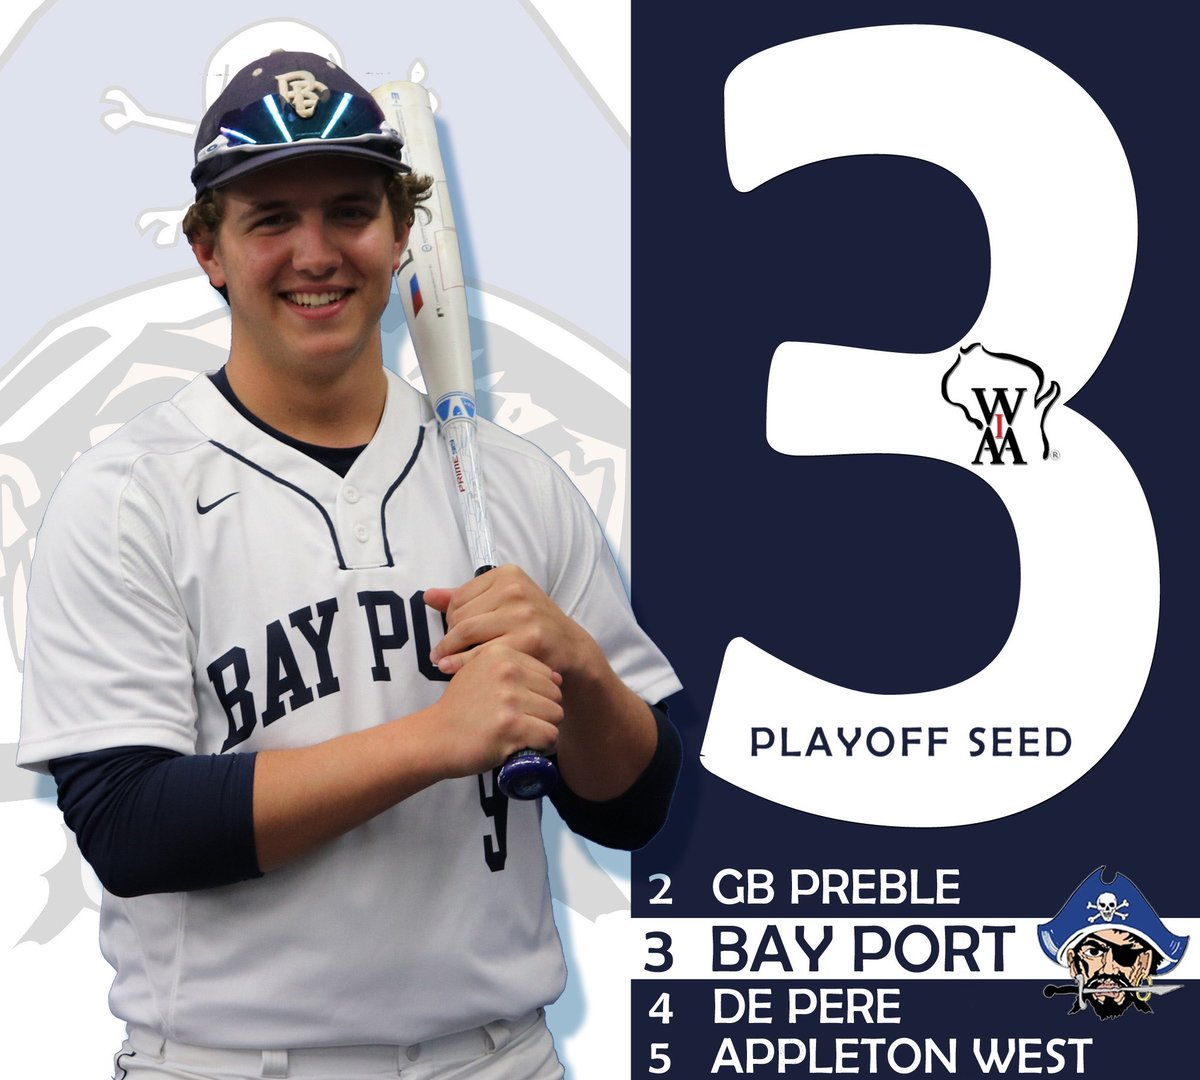 @bayportbaseball earns a #3️⃣ Seed in the @wiaawi Sectional  ⚾️The Pirates will open up with a Regional Final hosting Winner of #6️⃣ @HVille_Baseball vs. #1️⃣1️⃣ @gbeastwest   ⚓️Thursday, May 30th 4:30 First Pitch from @BayPortHS   ⚾️ http://halftime.wiaawi.org/CustomApps/Tournaments/Brackets/HTML/2019_Baseball_Boys_Div1_Sec2_8.html…